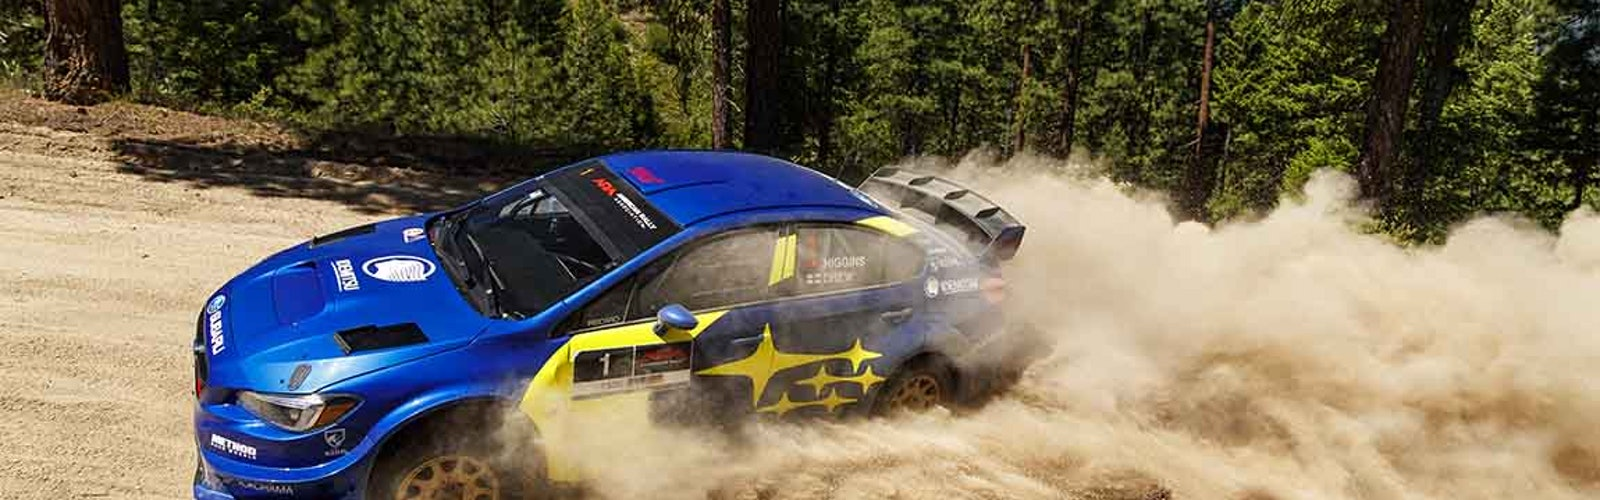 launch control empty handed episode 7 6 dirtfish launch control empty handed episode